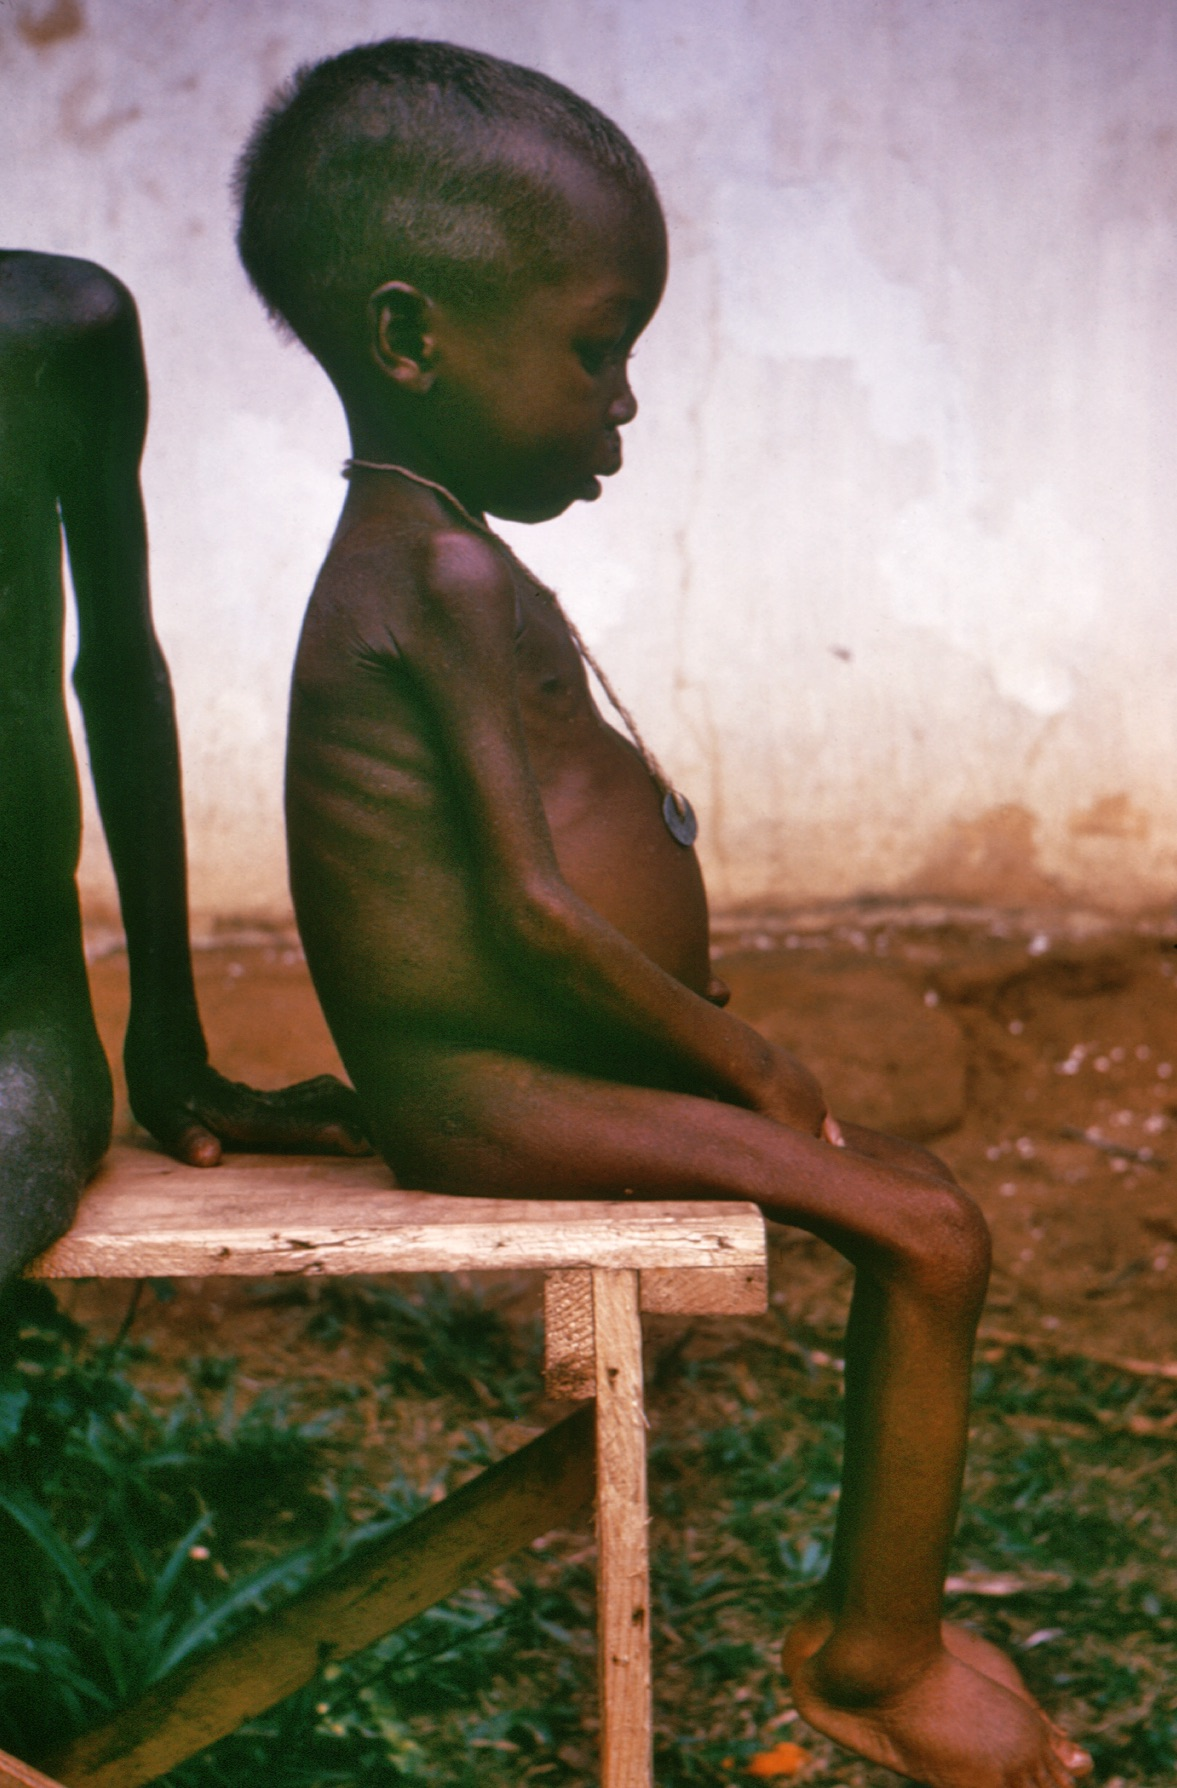 A child with kwashiorkor. Photo taken during a conflict in Nigeria in the 1960's.